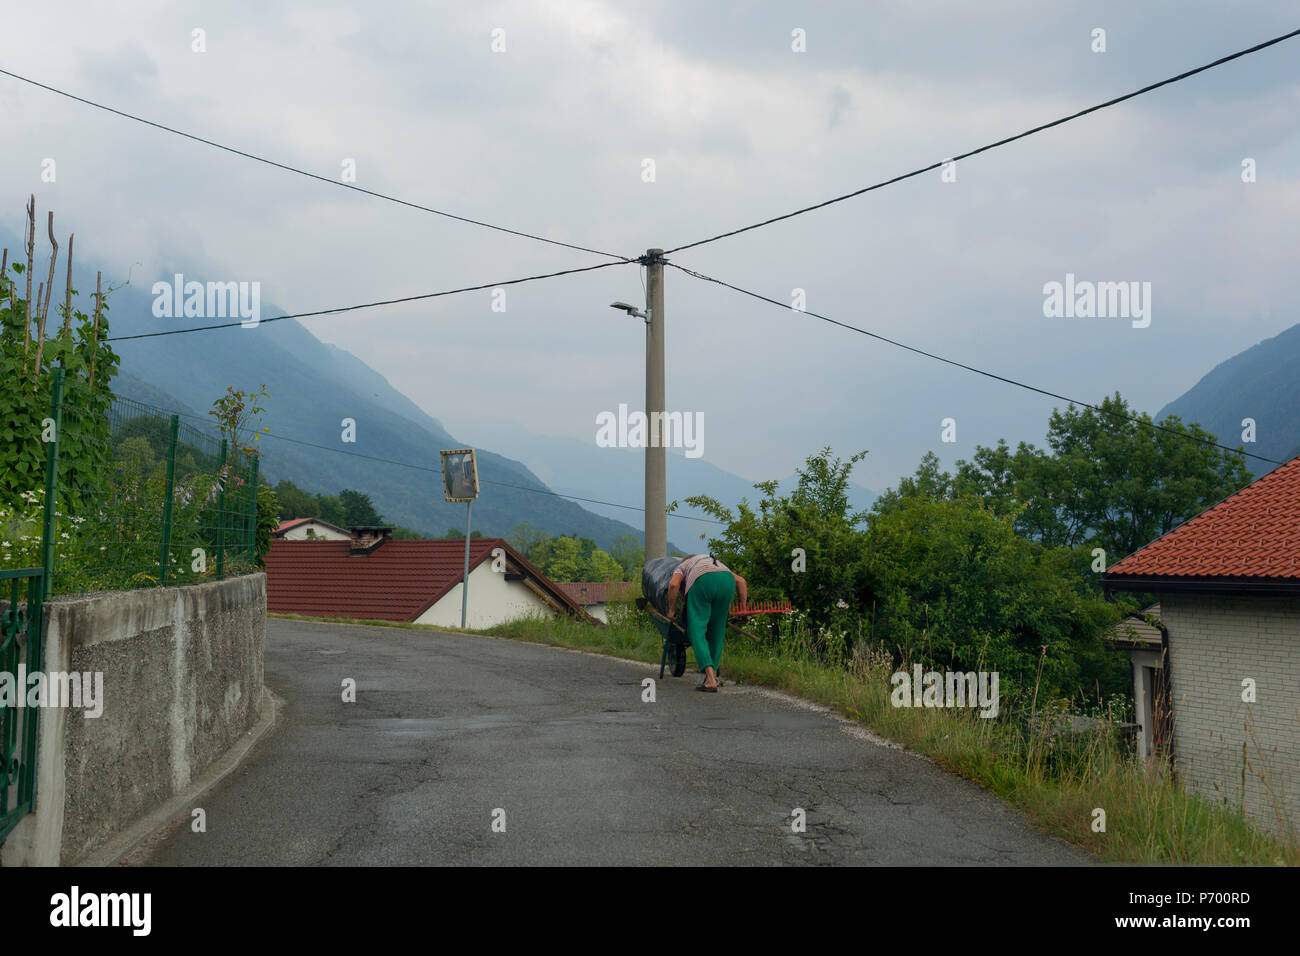 An elderly local woman hunches over a small cart transporting freshly mown grass in a rural mountainside Slovenian village, on 21st June 2018, in Borjana, near Kobarid, Slovenia. - Stock Image